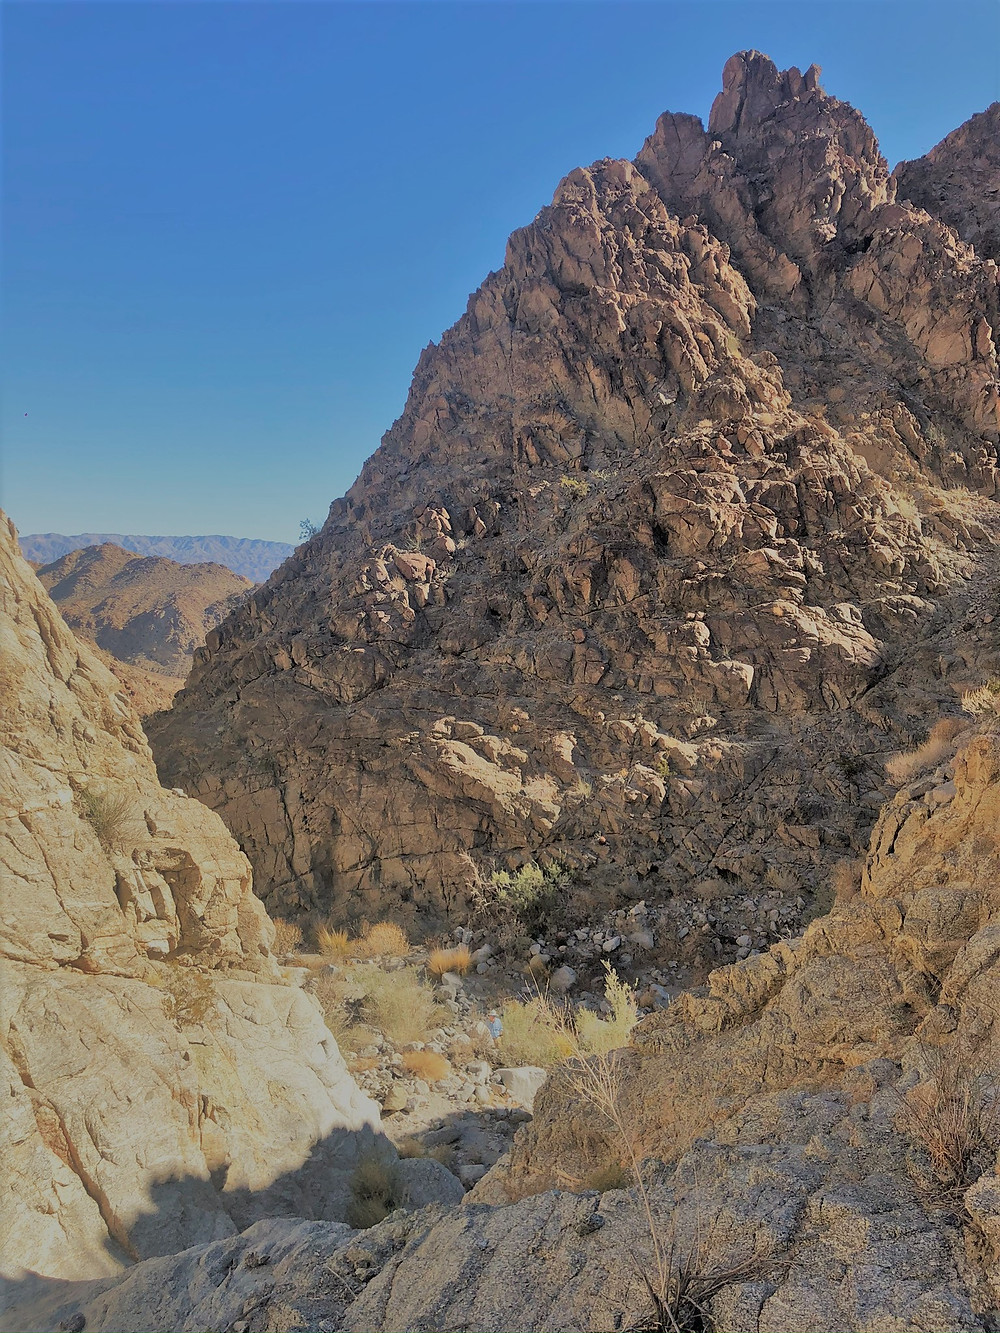 Steep sided canyon near entrance to Santa Rosa Mountains in La Quinta. Friends of the Desert Mountains